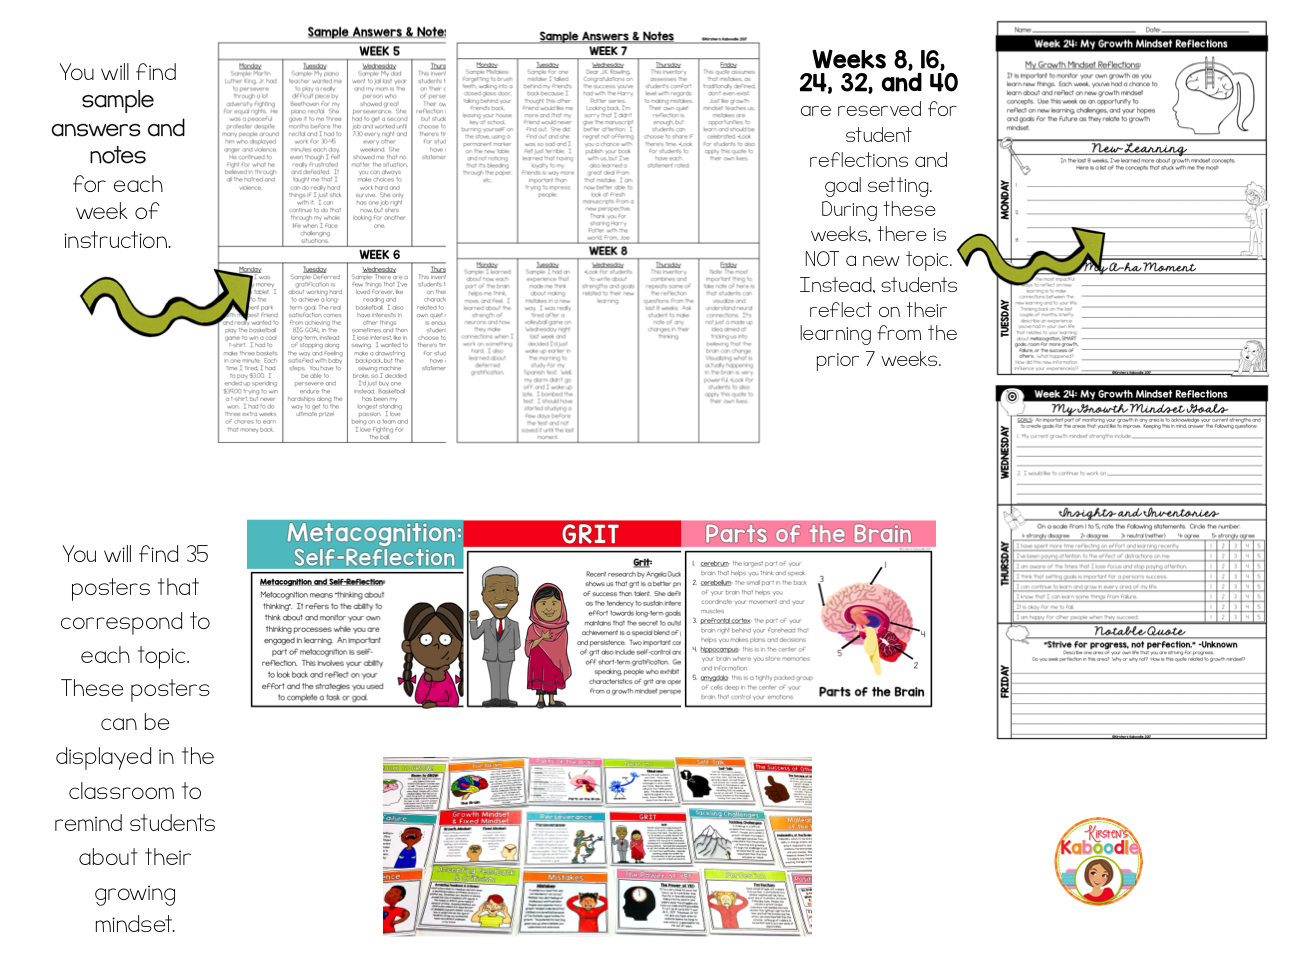 Growth Mindset Activities for 4th Grade and Above